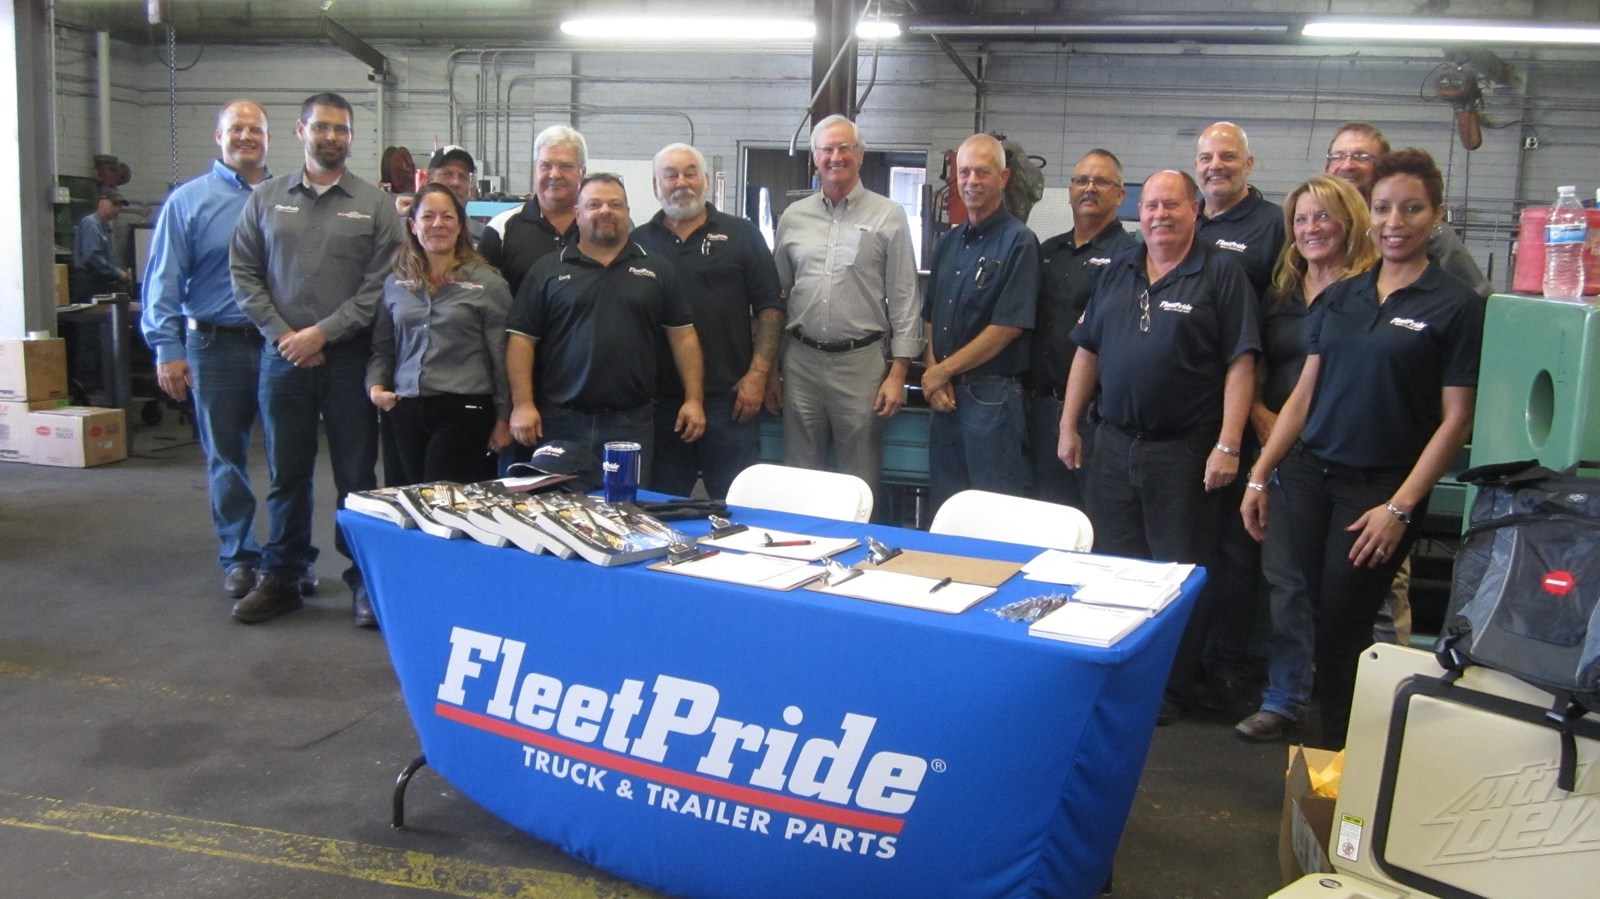 Members of FleetPride management join team members from the company's Phoenix location to mark the grand reopening of the branch and its new hydraulic shop.